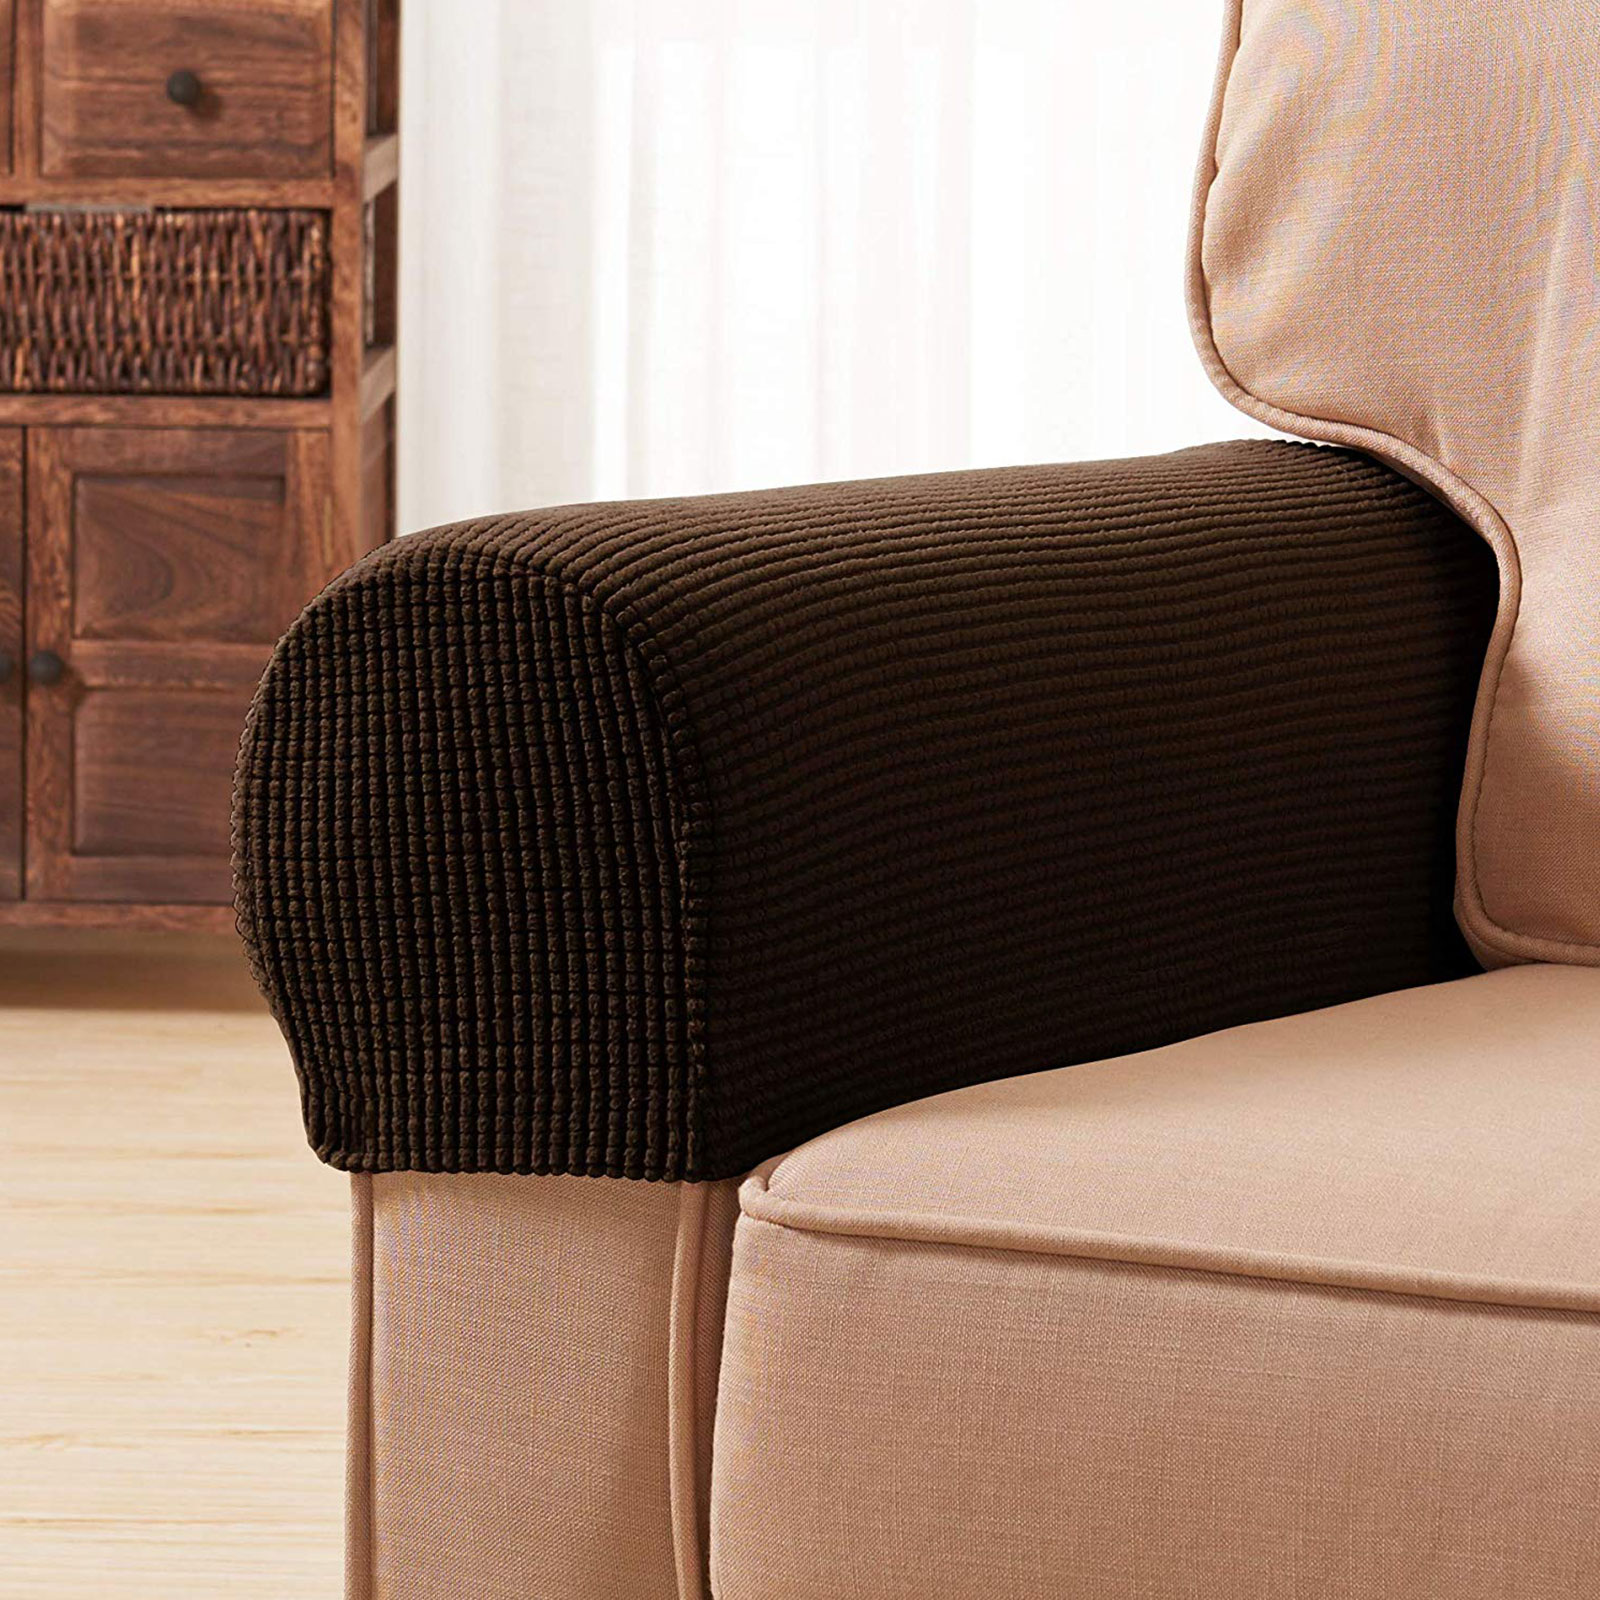 2x Premium Armrest Covers Stretchy Chair Sofa Couch Arm